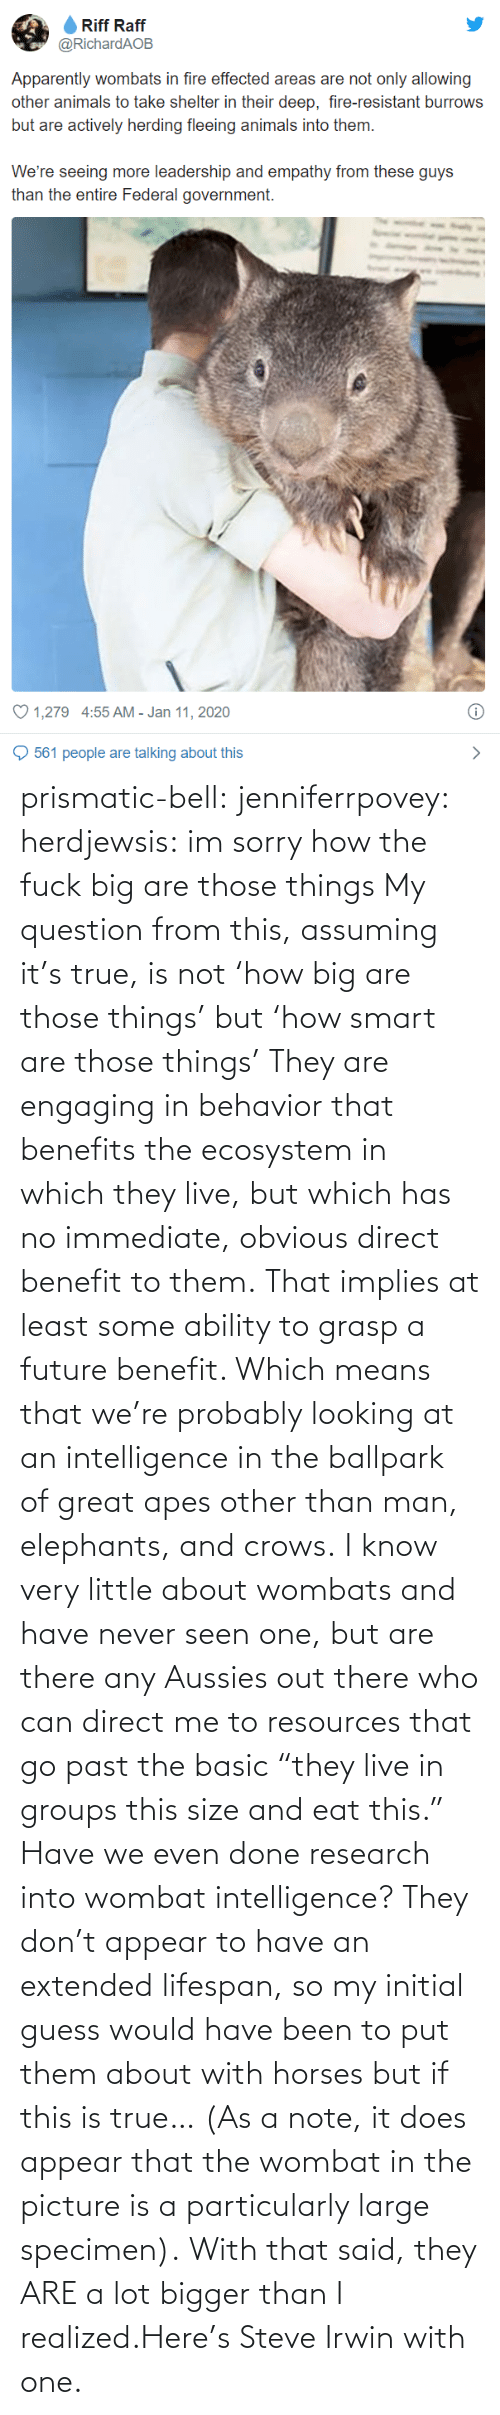 "question: prismatic-bell:  jenniferrpovey: herdjewsis: im sorry how the fuck big are those things My question from this, assuming it's true, is not 'how big are those things' but 'how smart are those things' They are engaging in behavior that benefits the ecosystem in which they live, but which has no immediate, obvious direct benefit to them. That implies at least some ability to grasp a future benefit. Which means that we're probably looking at an intelligence in the ballpark of great apes other than man, elephants, and crows. I know very little about wombats and have never seen one, but are there any Aussies out there who can direct me to resources that go past the basic ""they live in groups this size and eat this."" Have we even done research into wombat intelligence? They don't appear to have an extended lifespan, so my initial guess would have been to put them about with horses but if this is true… (As a note, it does appear that the wombat in the picture is a particularly large specimen).  With that said, they ARE a lot bigger than I realized.Here's Steve Irwin with one."